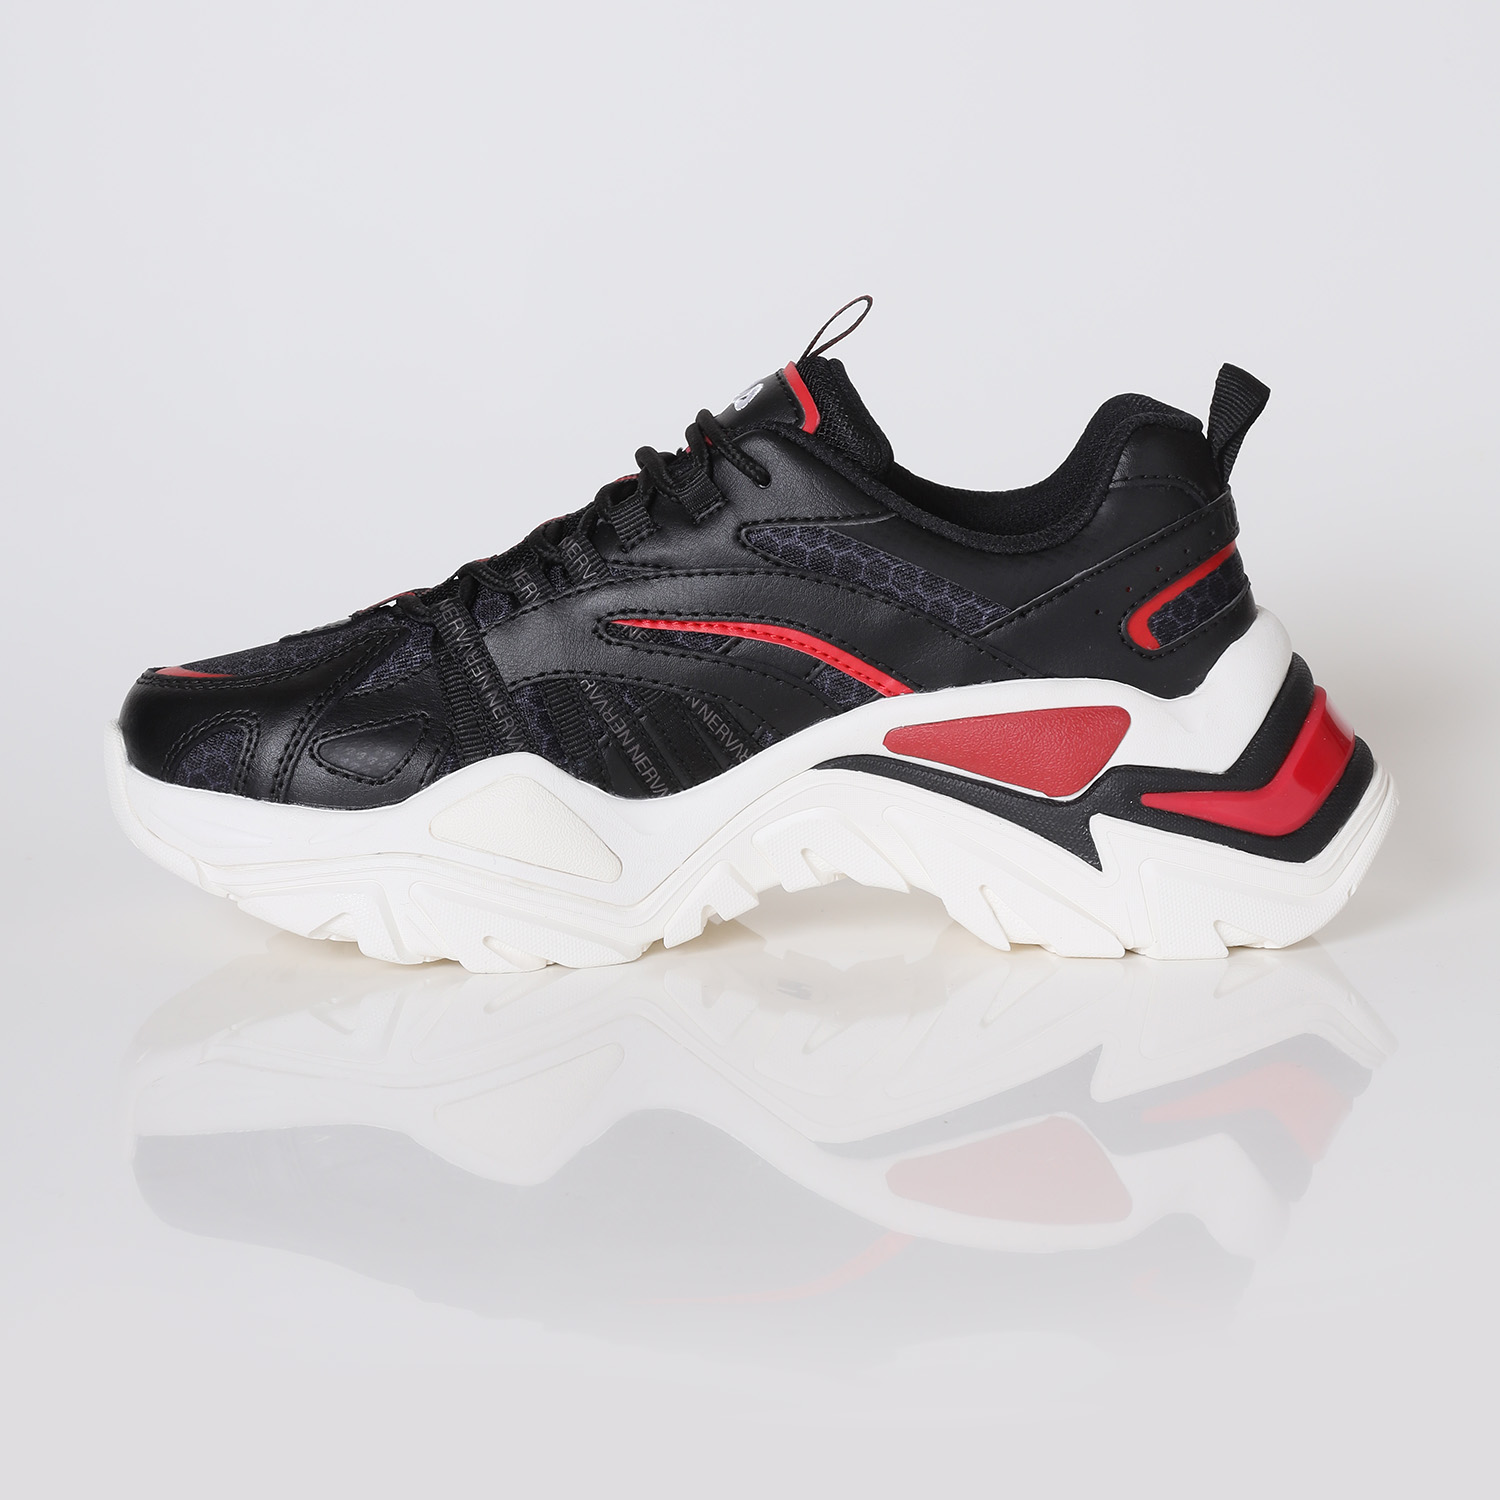 FILA INTERATION EVANGELION LIMITED (BLACK(NERV))